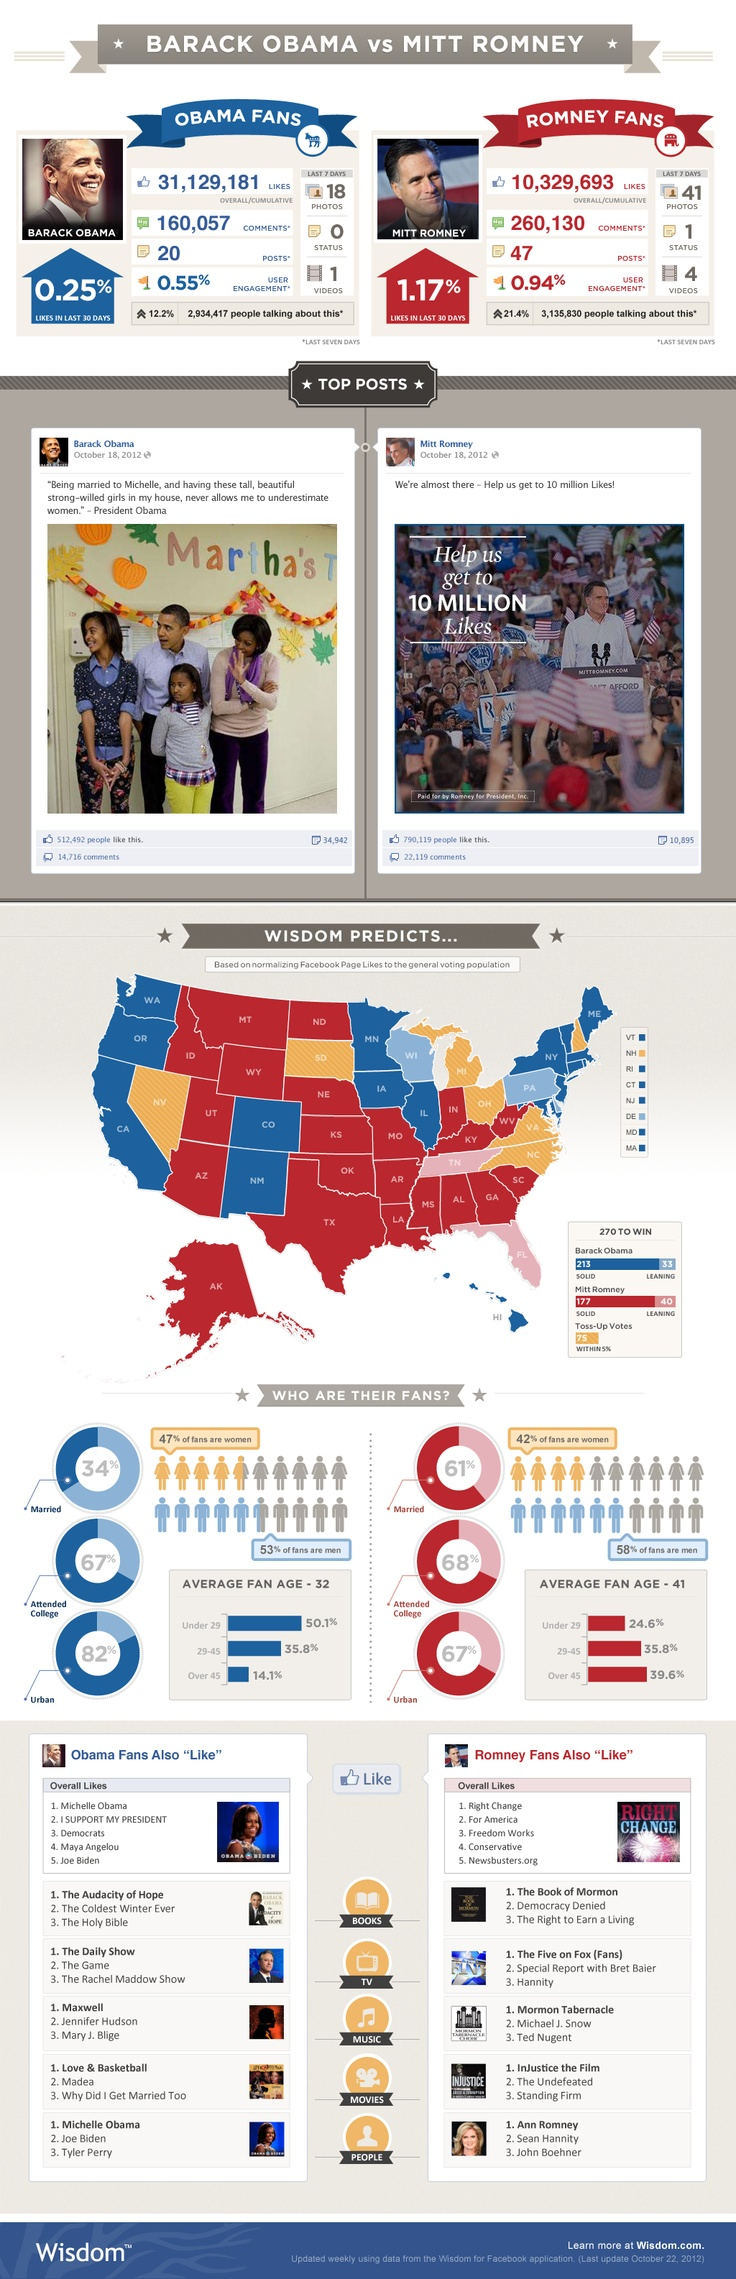 US Election 2012. MicroStrategy 9